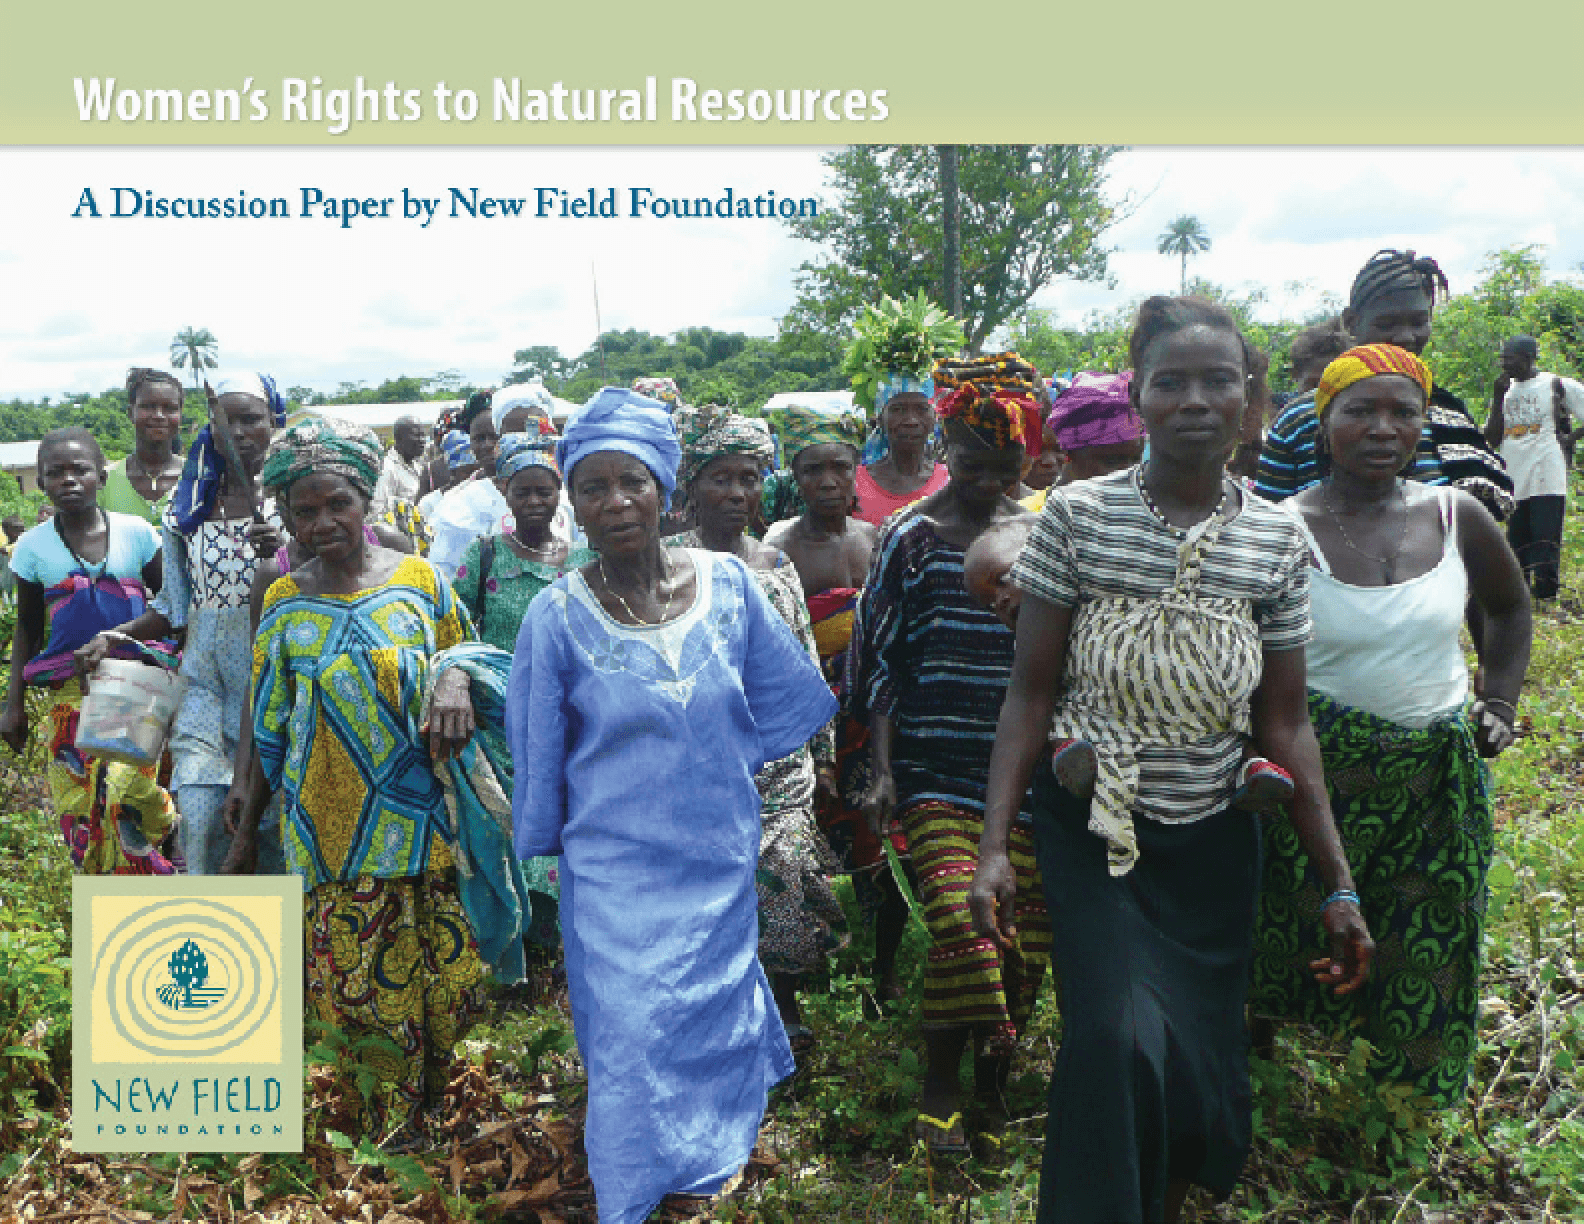 Women's Rights to Natural Resources: A Discussion Paper by New Field Foundation